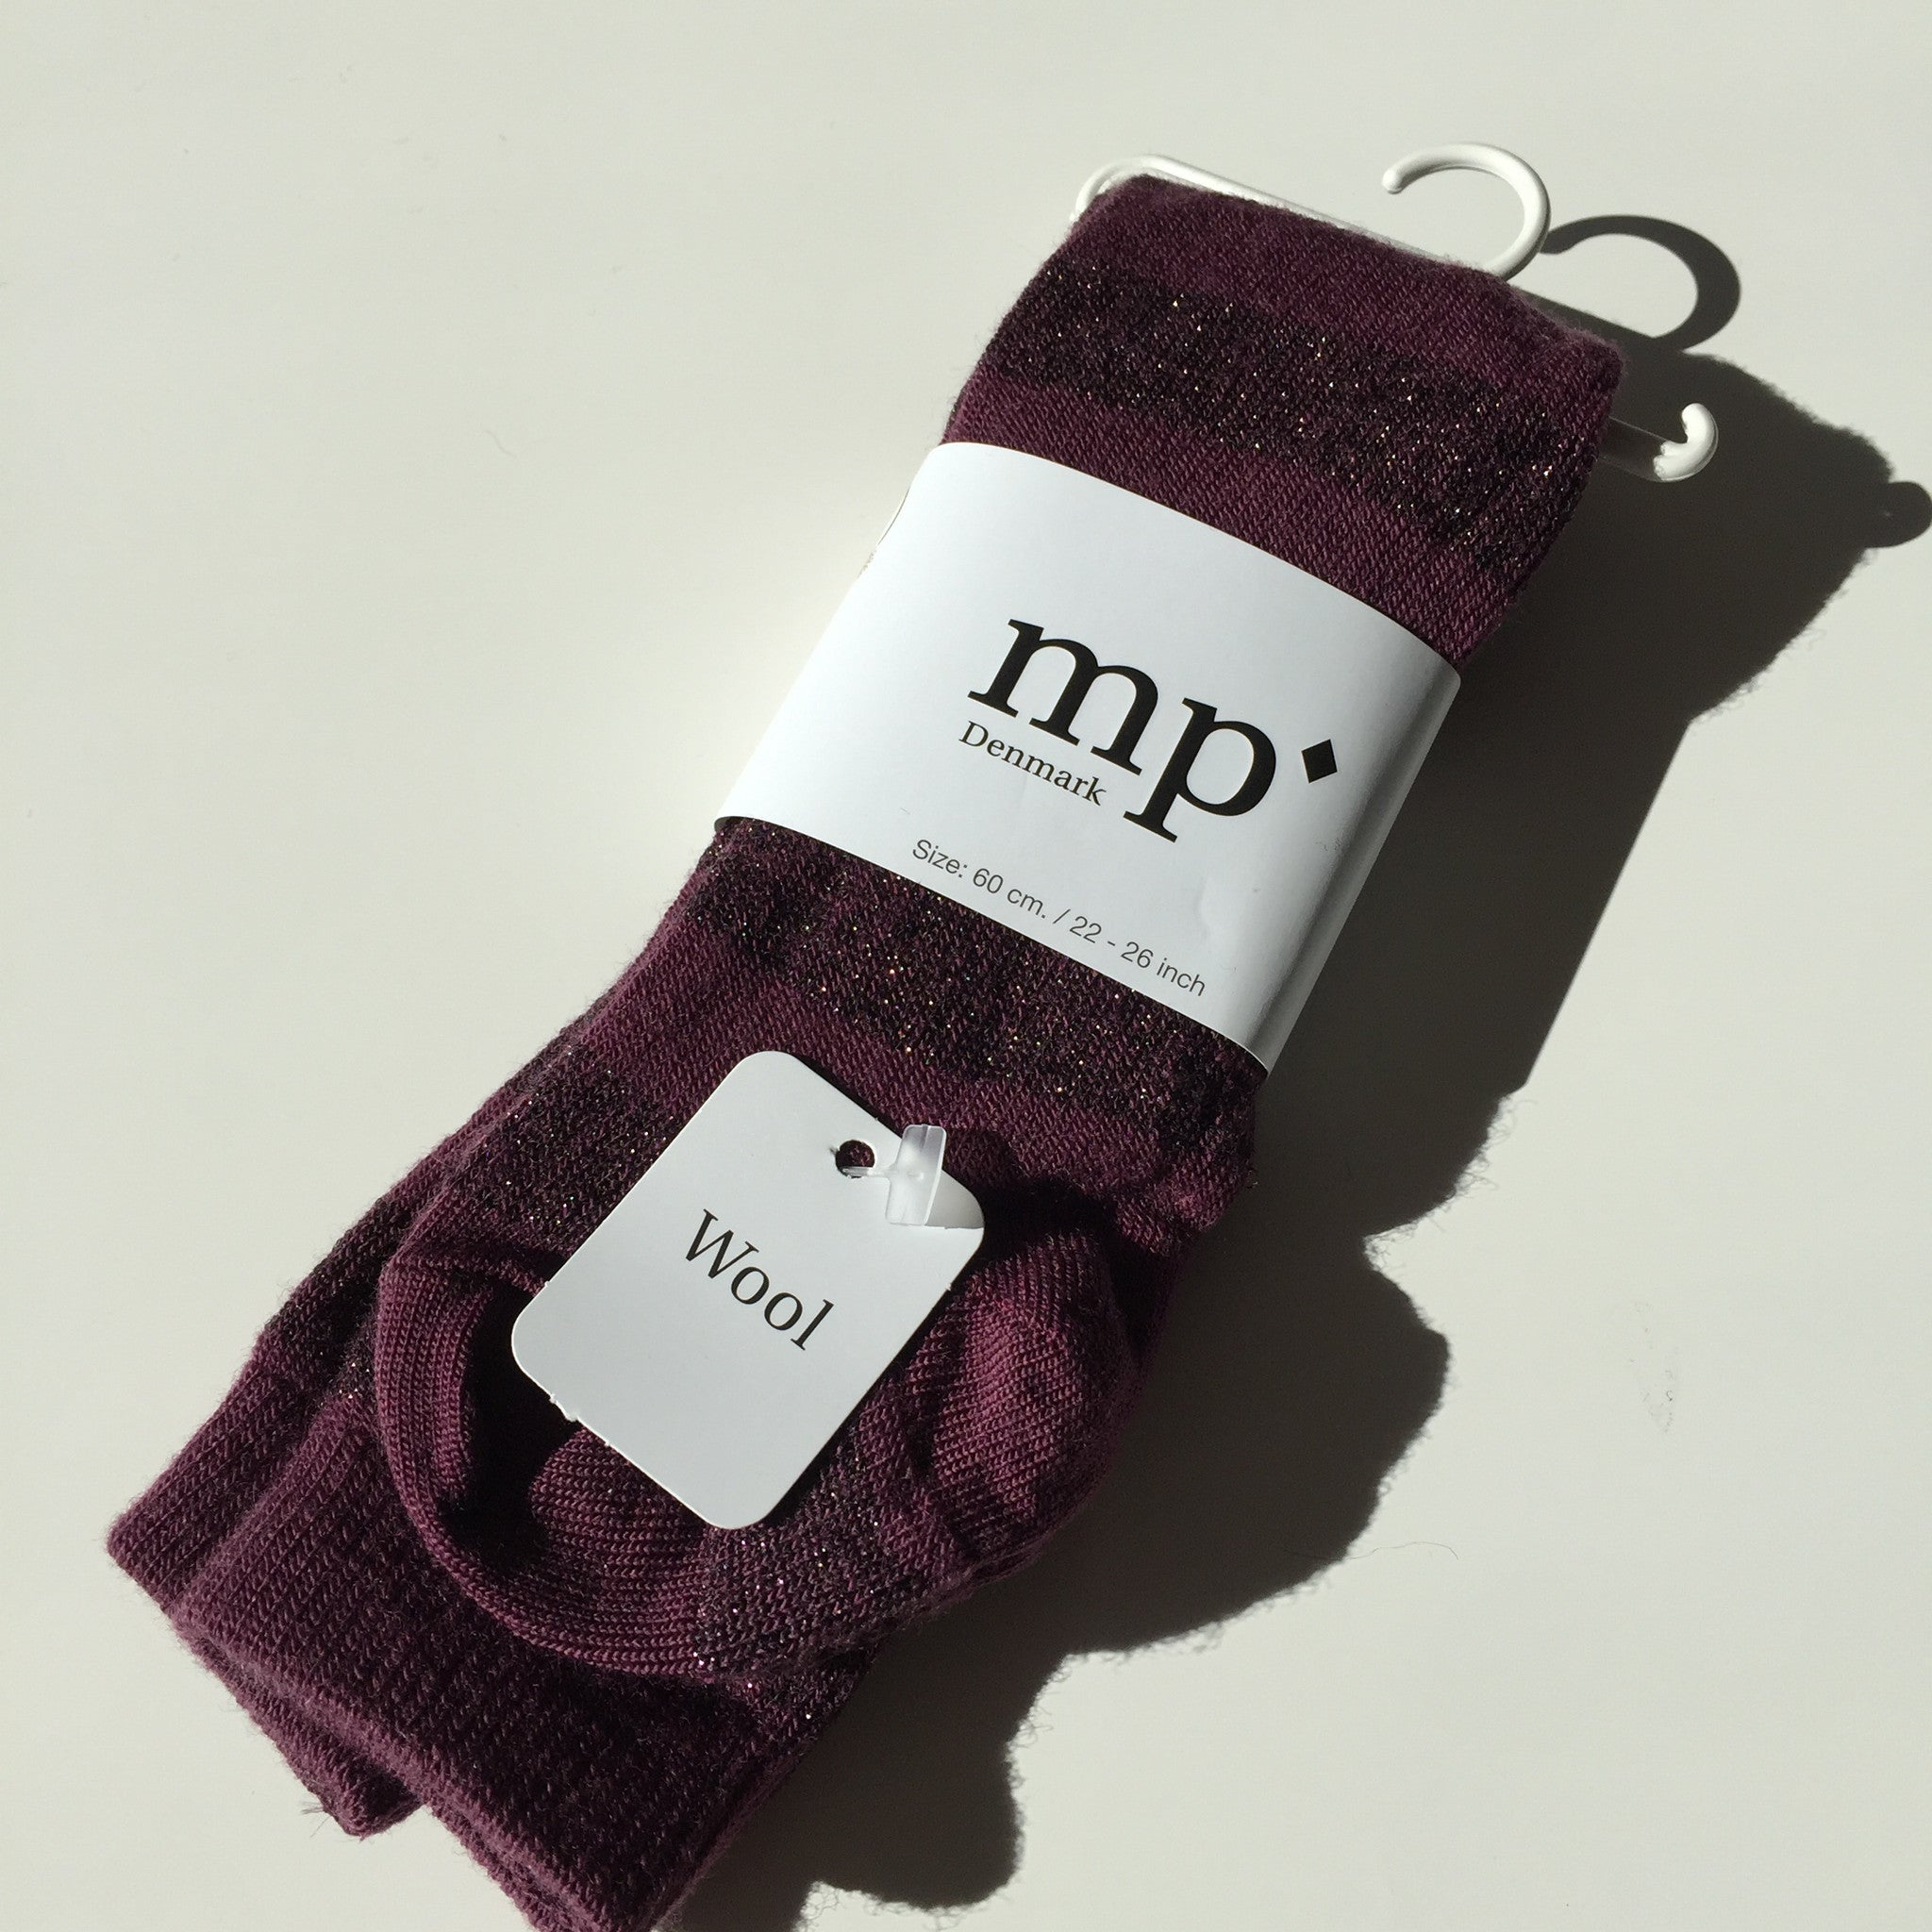 MP Strømper - Strømpebukser, 3911 Evy Wool - 843 Grape Wine (Bordeaux)